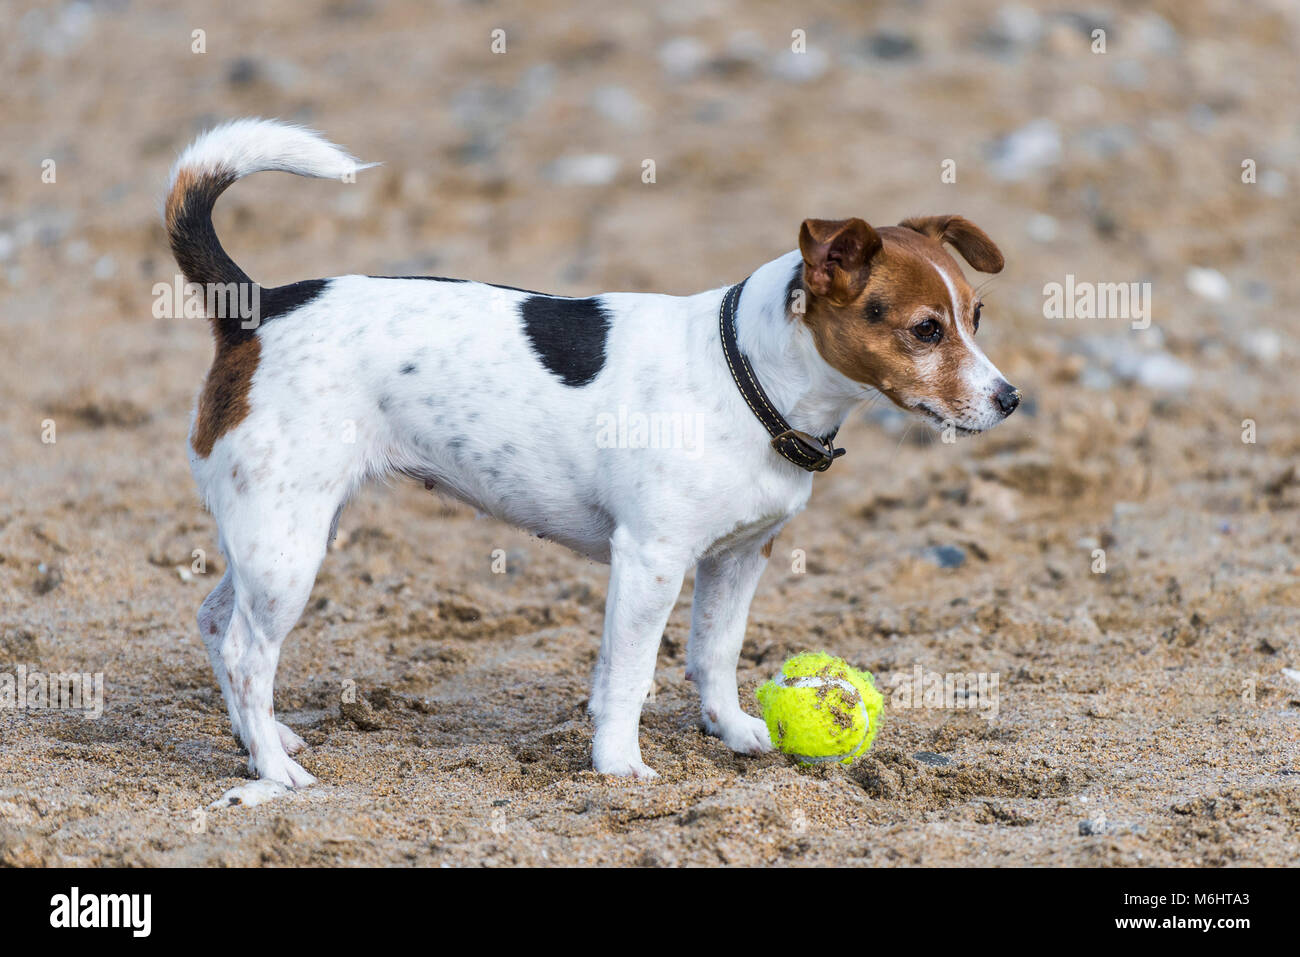 A Jack Russell Terrier patiently waiting for her ball to be thrown on Fistral Beach in Newquay Cornwall. - Stock Image